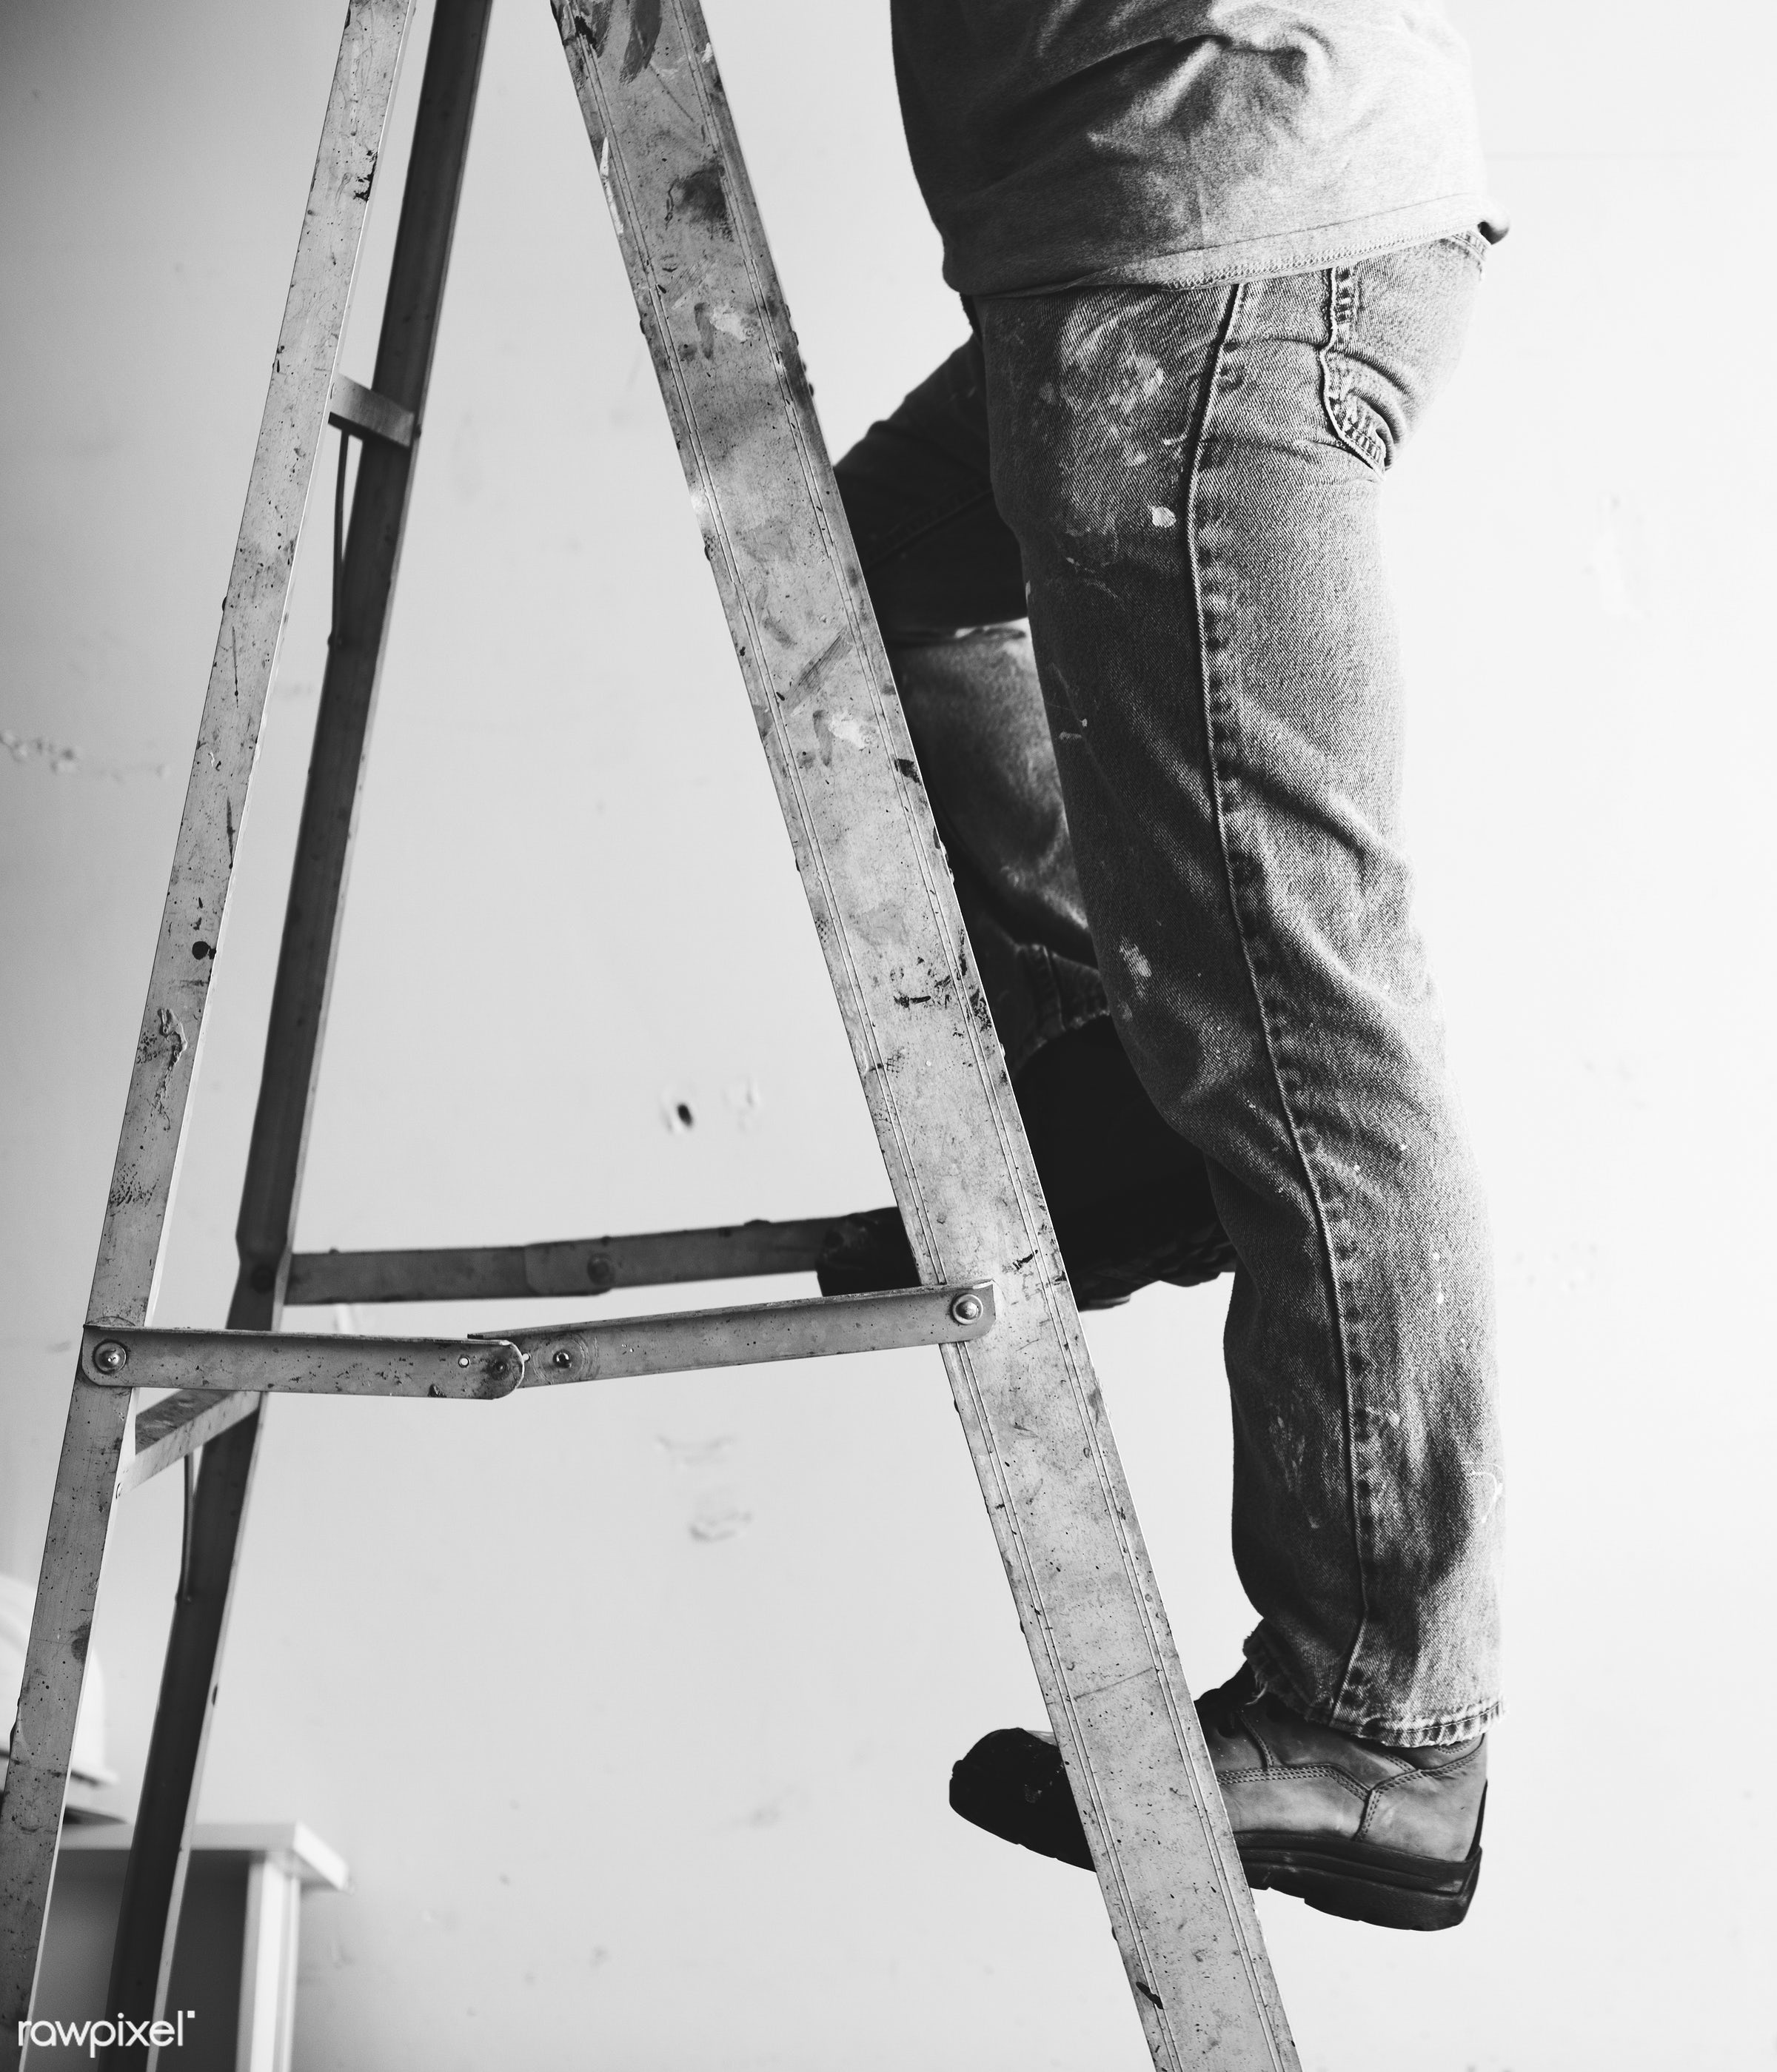 ladder, renovating, builder, equipment, build, tools, materials, craftsman, handyman, worker, laborer, repair, workman,...